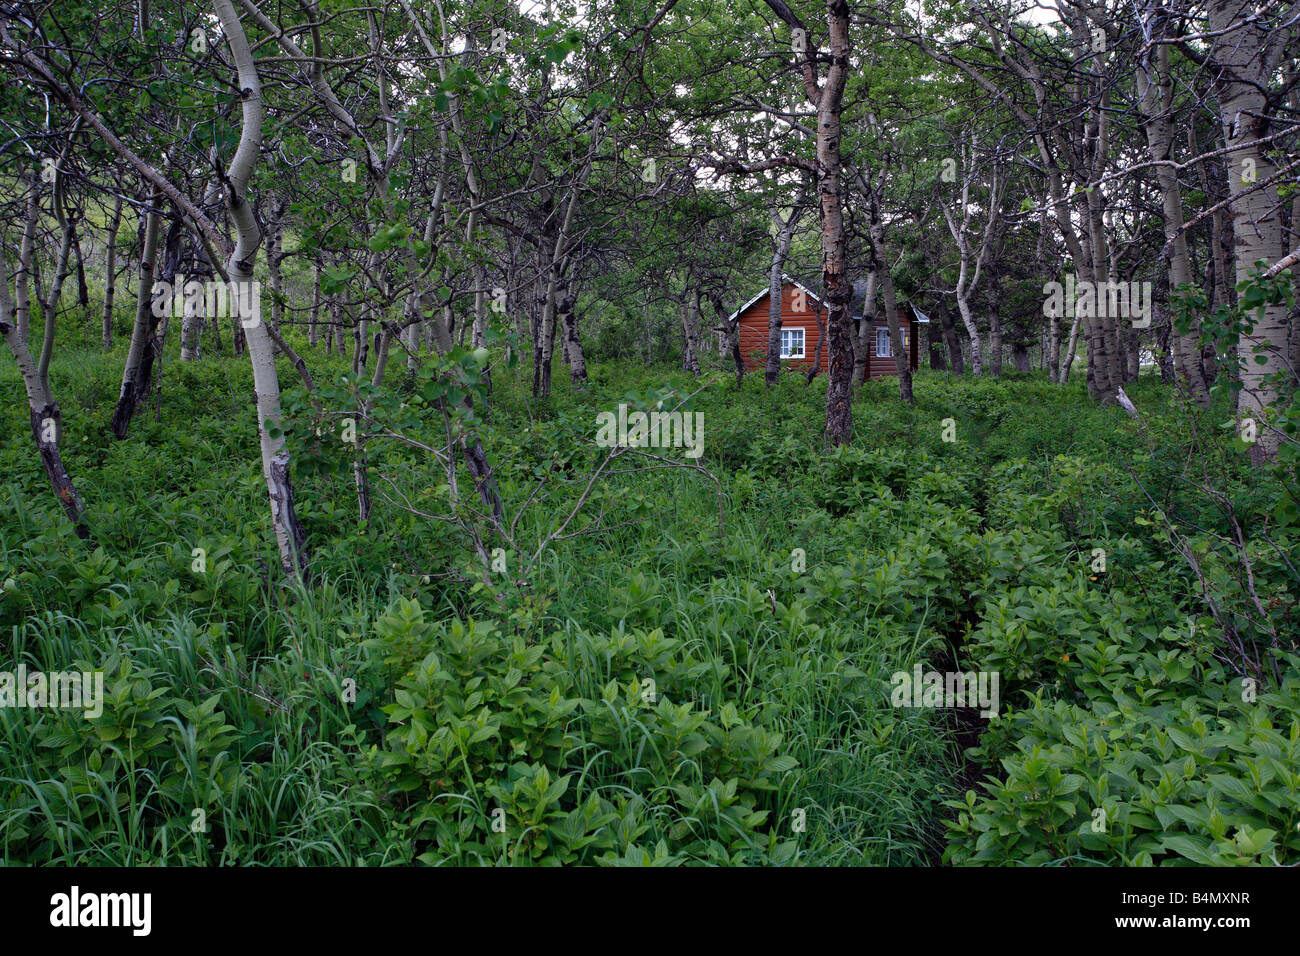 Cabin in forest - Stock Image